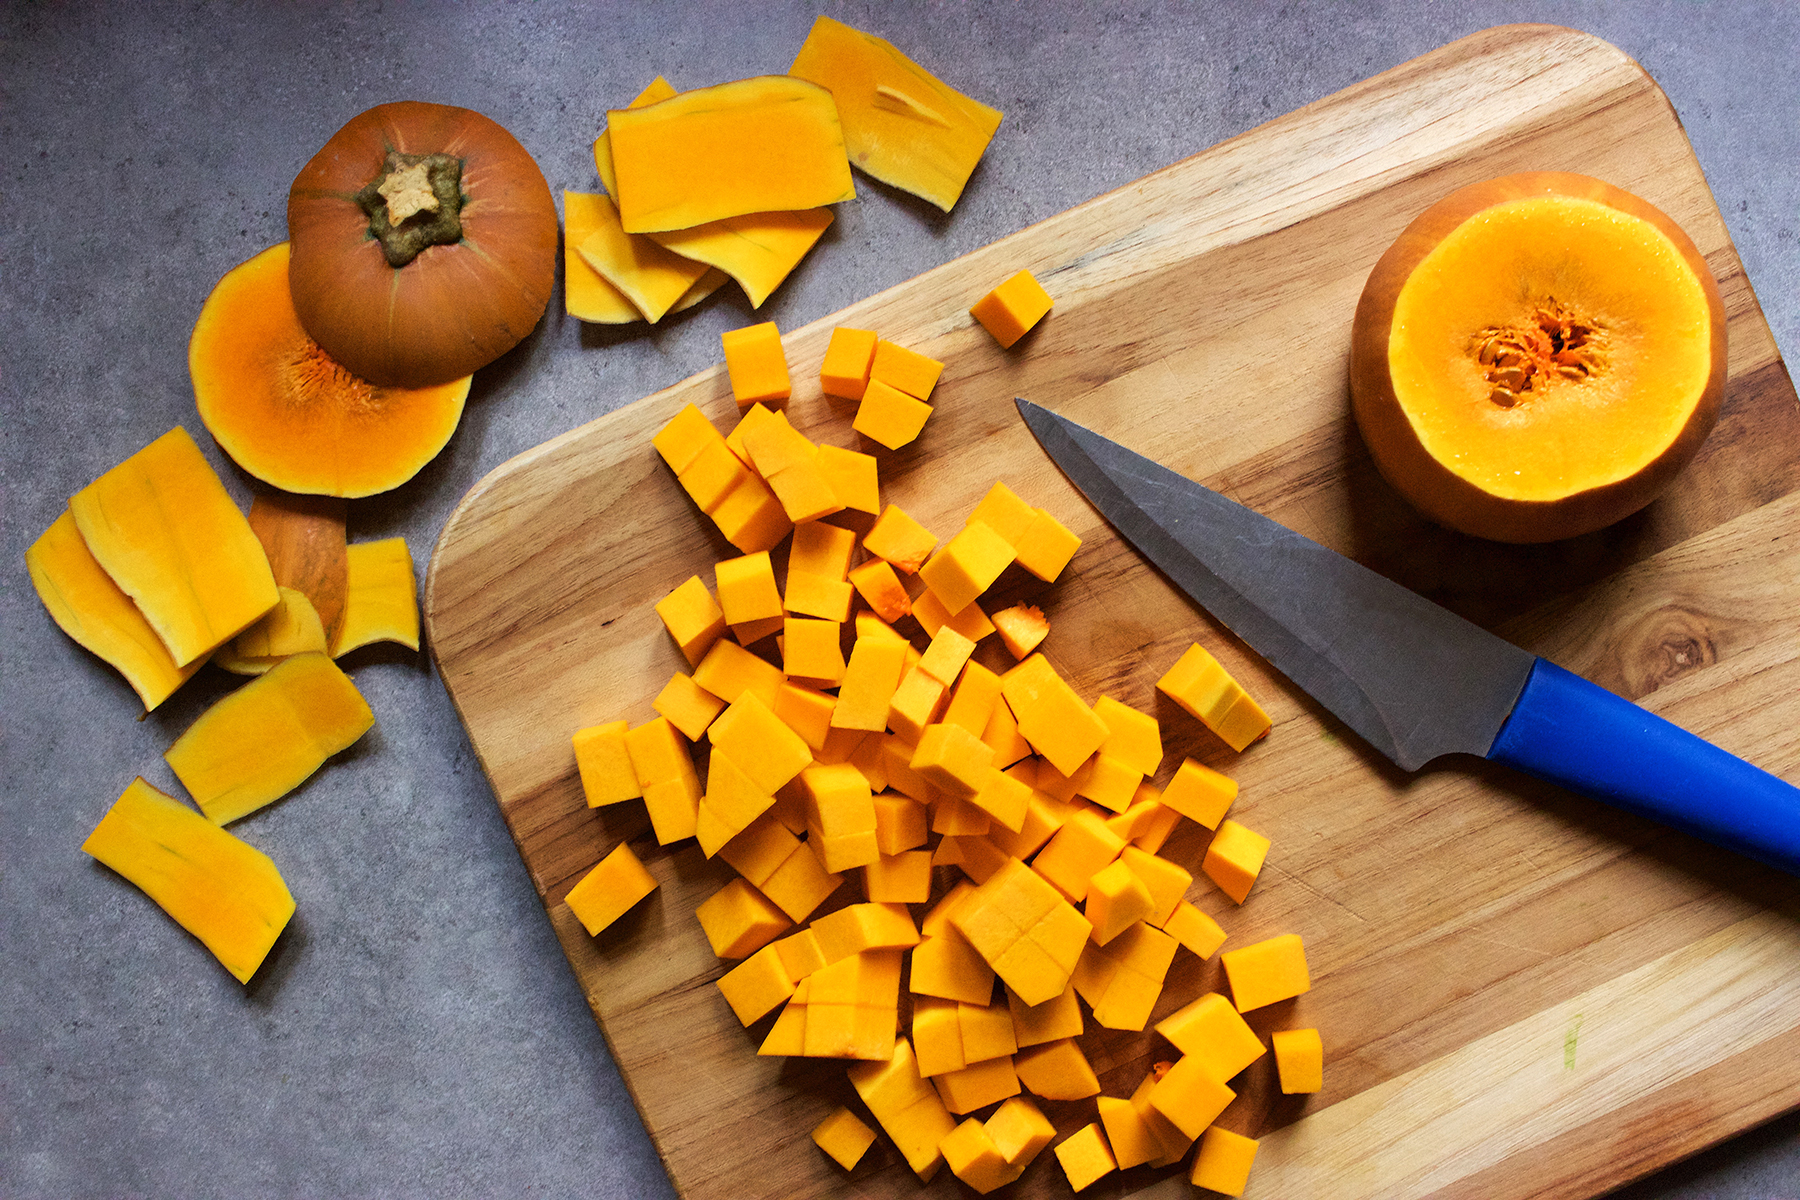 How to Cut a Butternut Squash in 4 Easy Steps